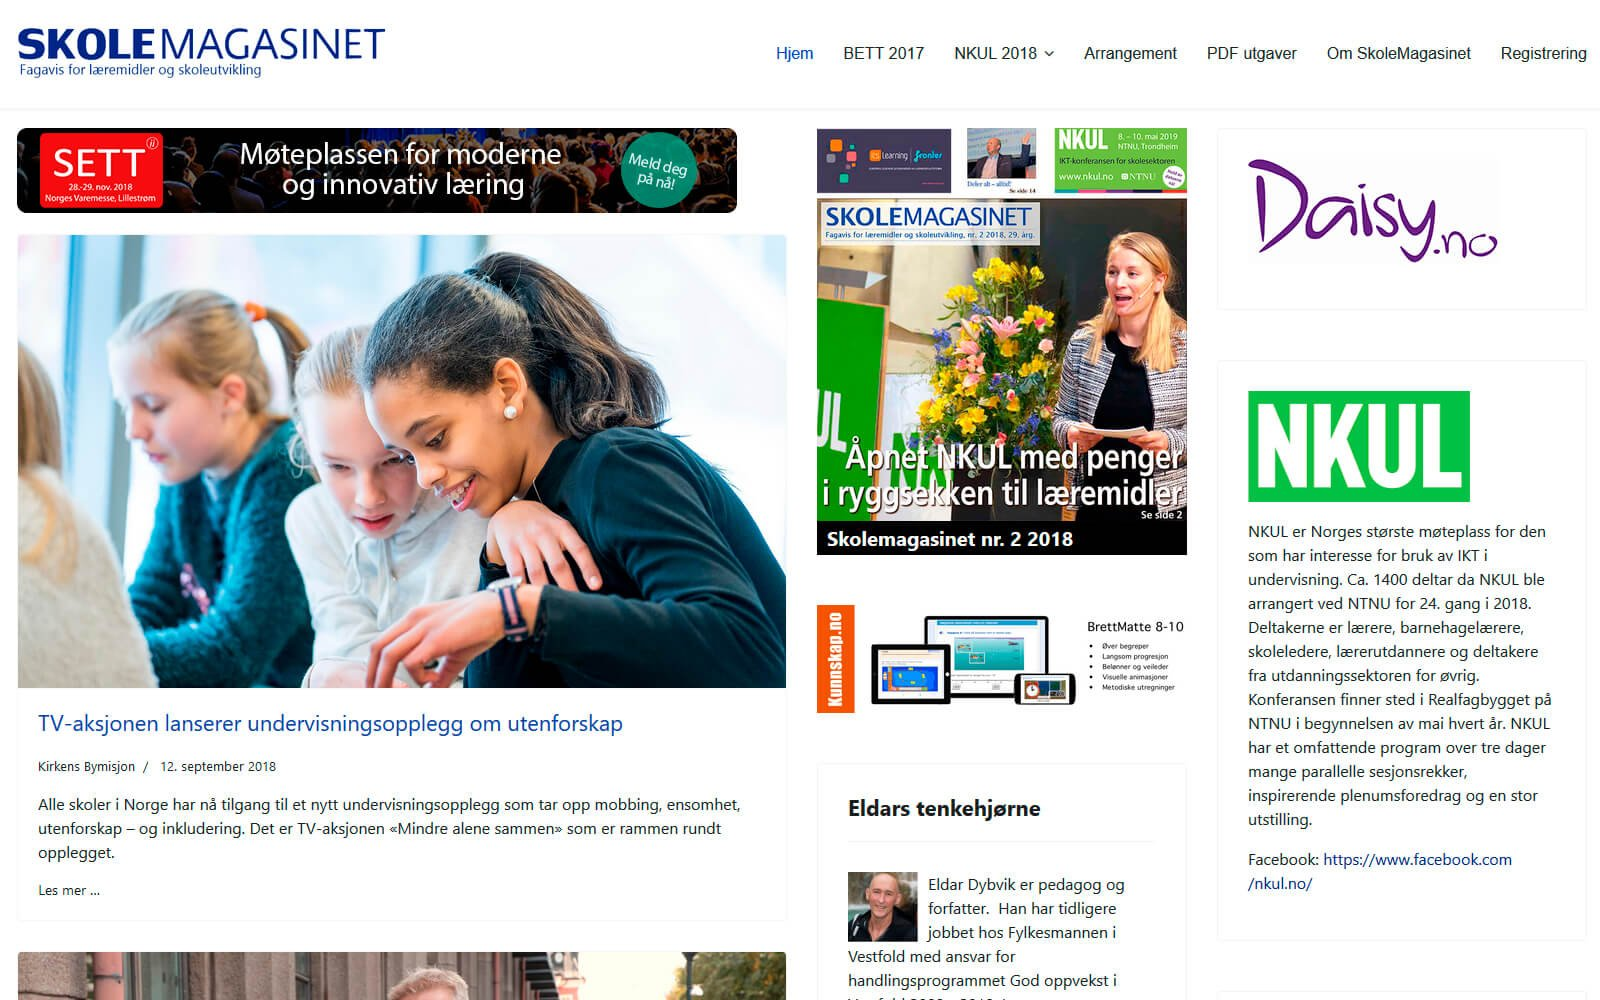 Skolemagasinet web